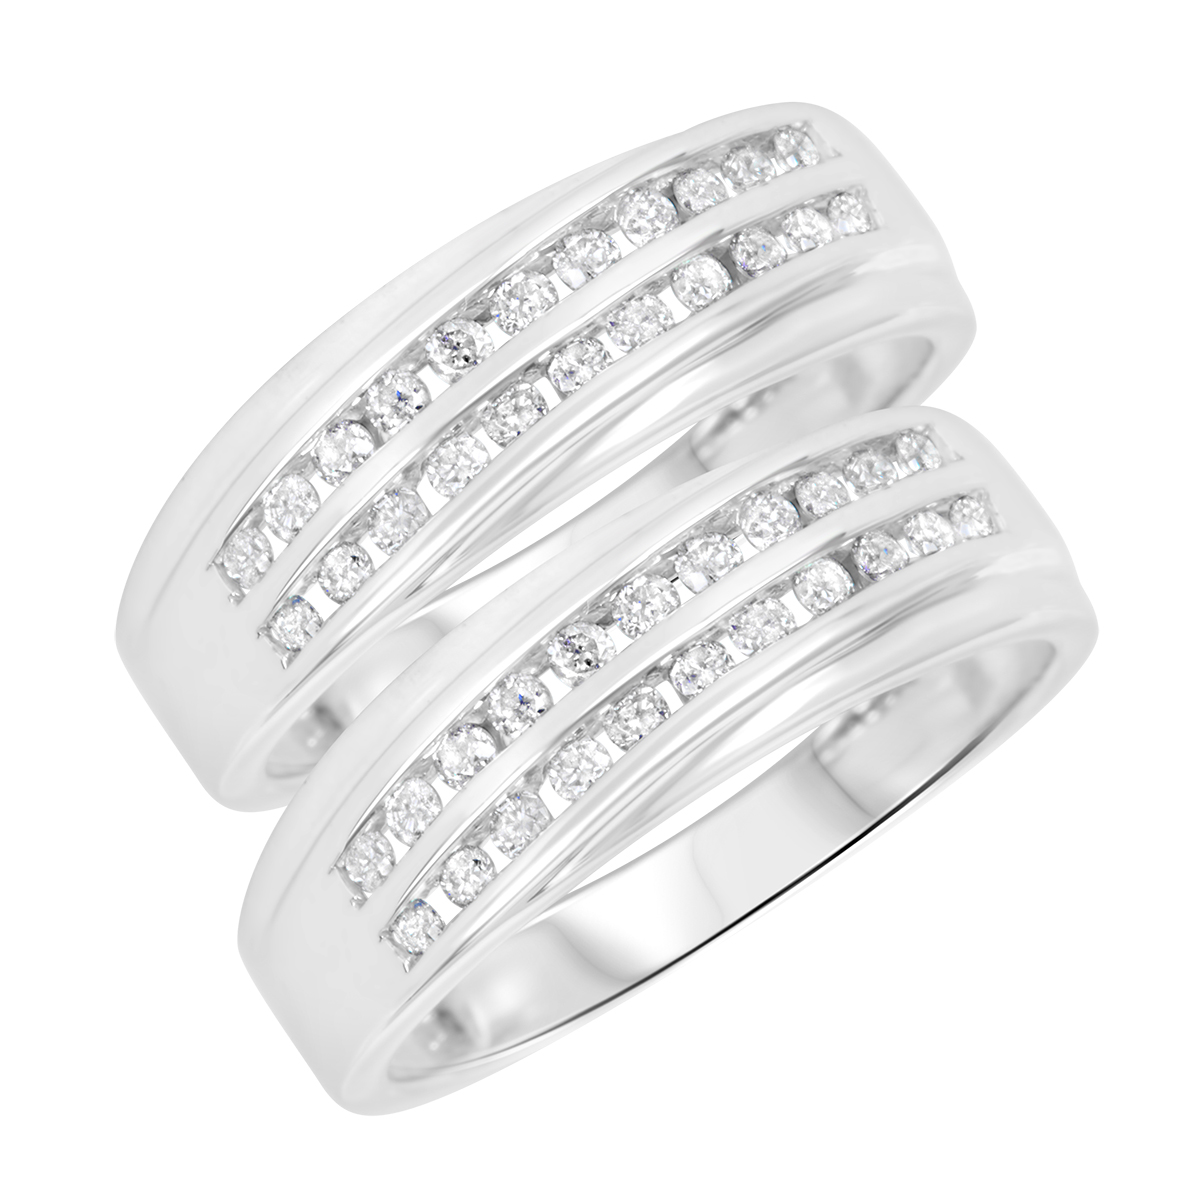 5/8 Carat T.W. Round Cut Ladies Same Sex Wedding Band Set 10K White Gold